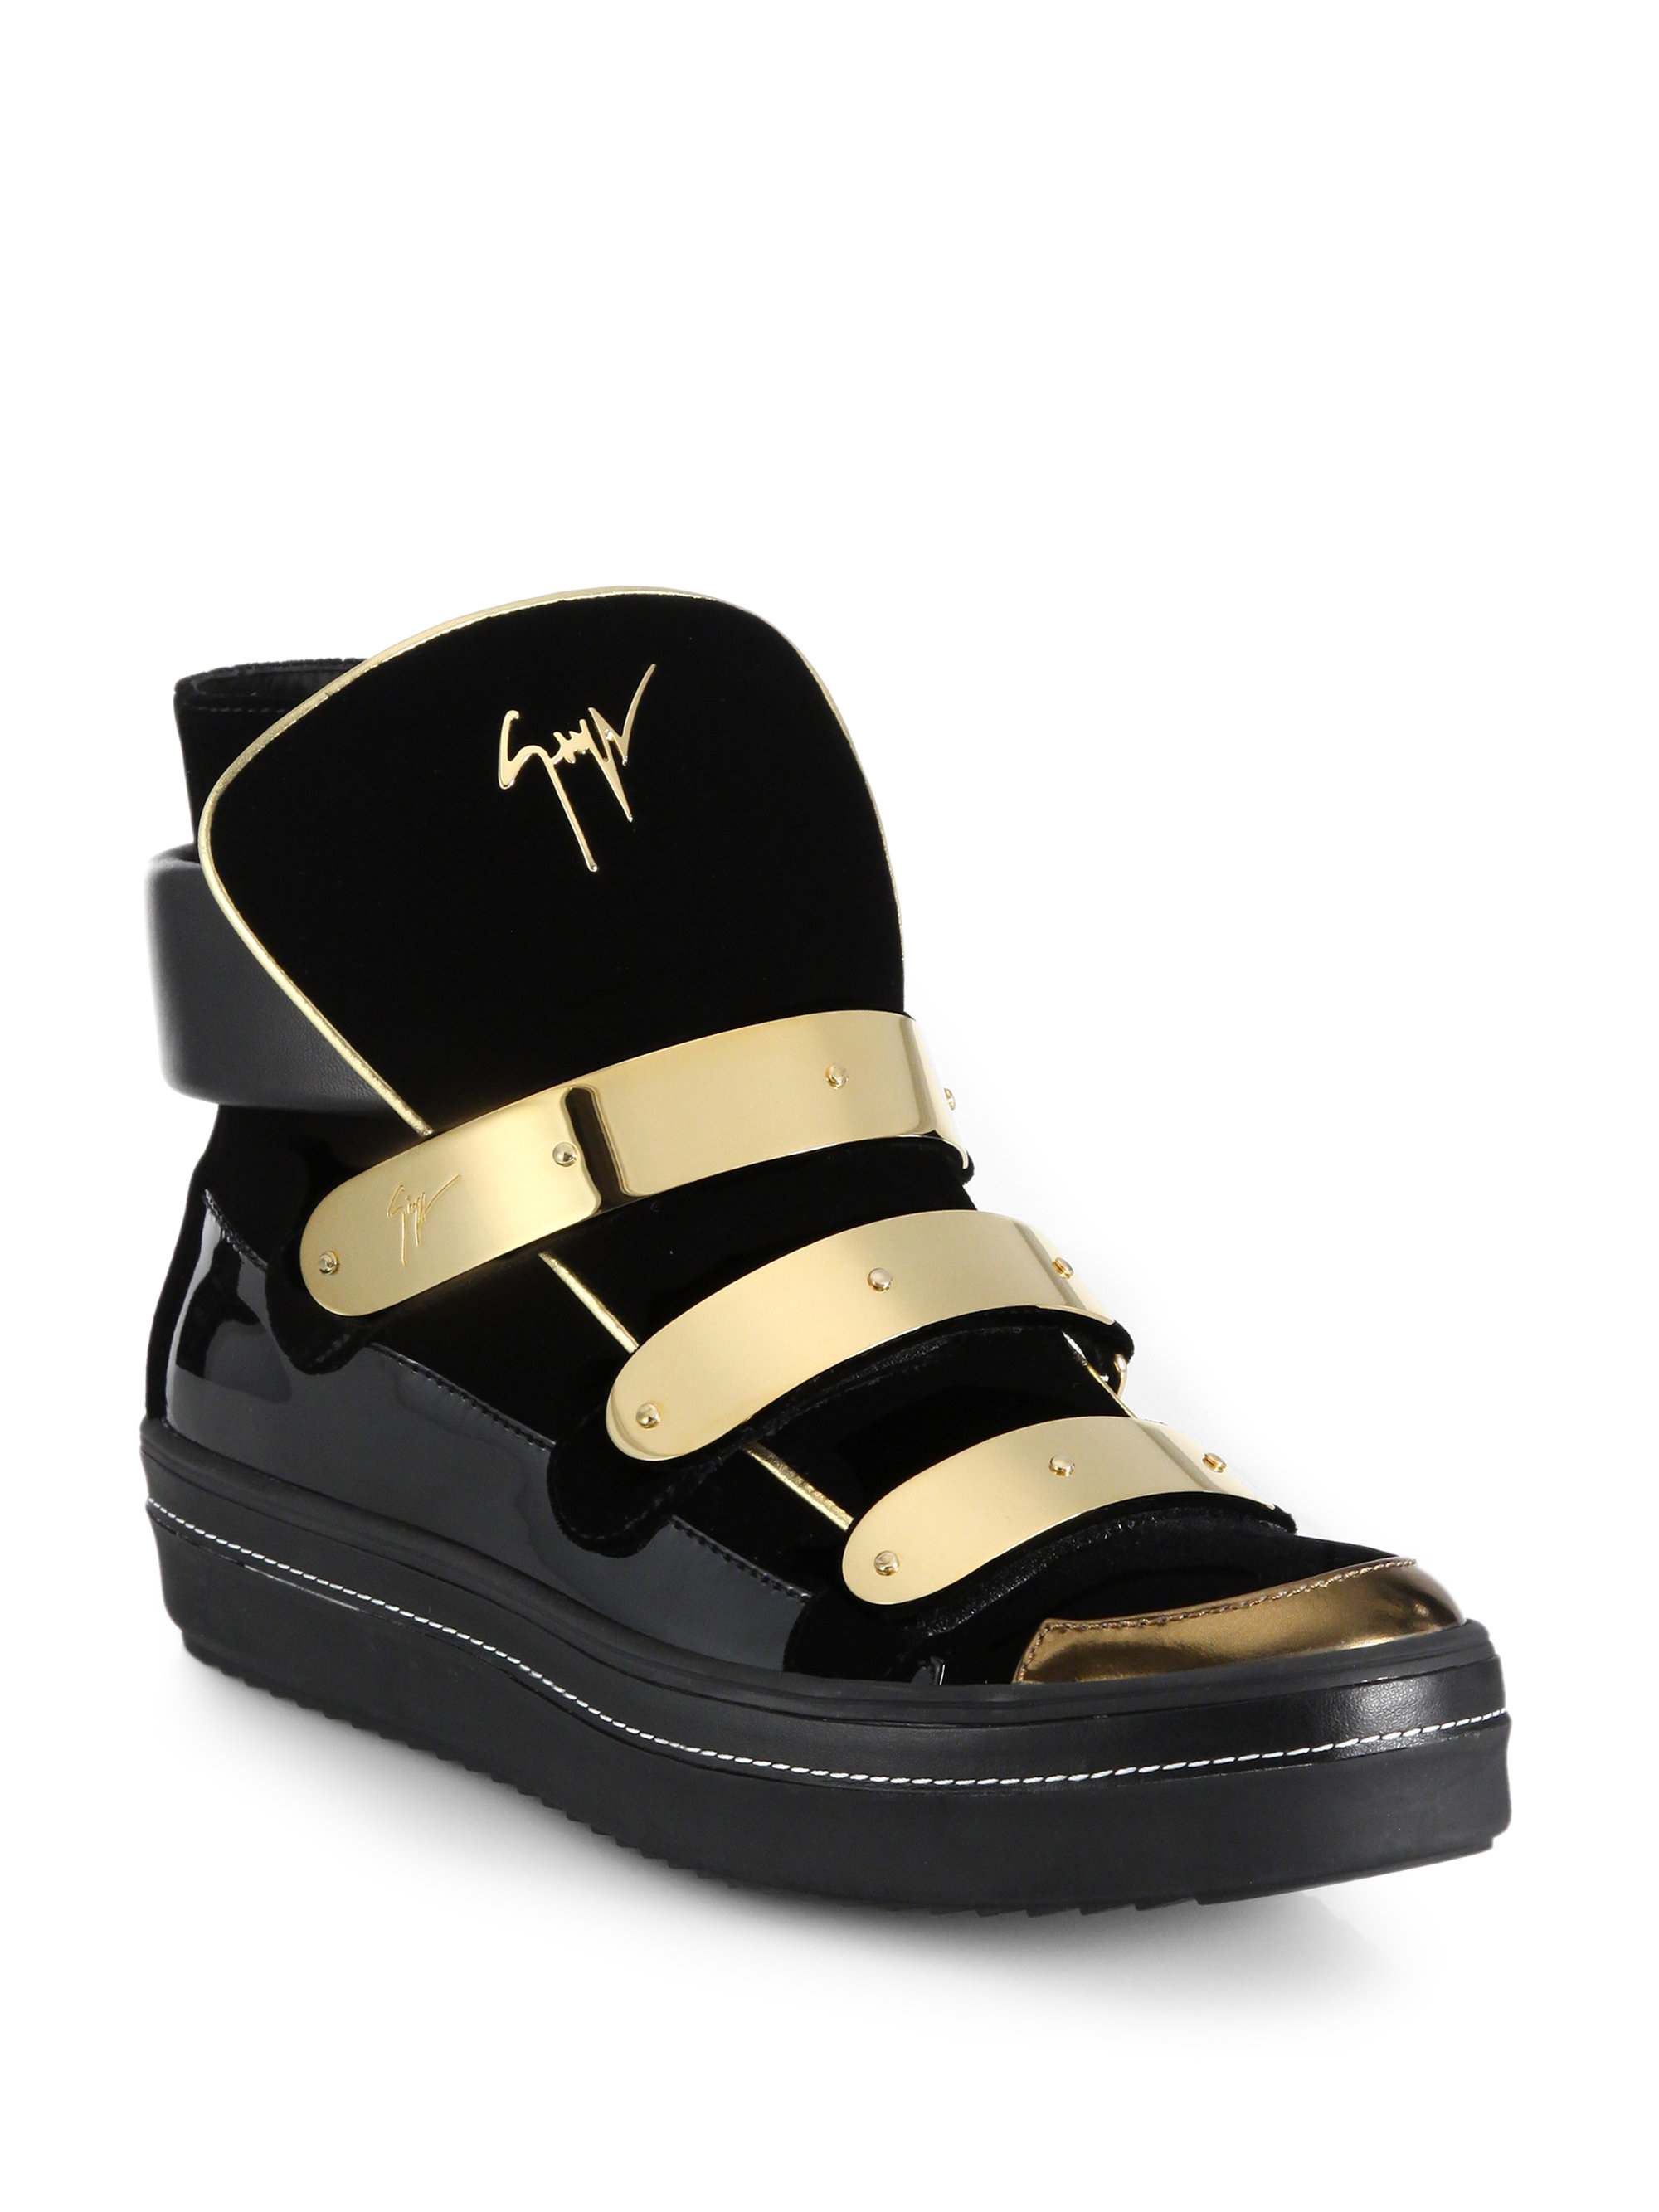 27b6f50db2815 Giuseppe Zanotti Space Velvet and Patent Leather High-Top Sneakers ...